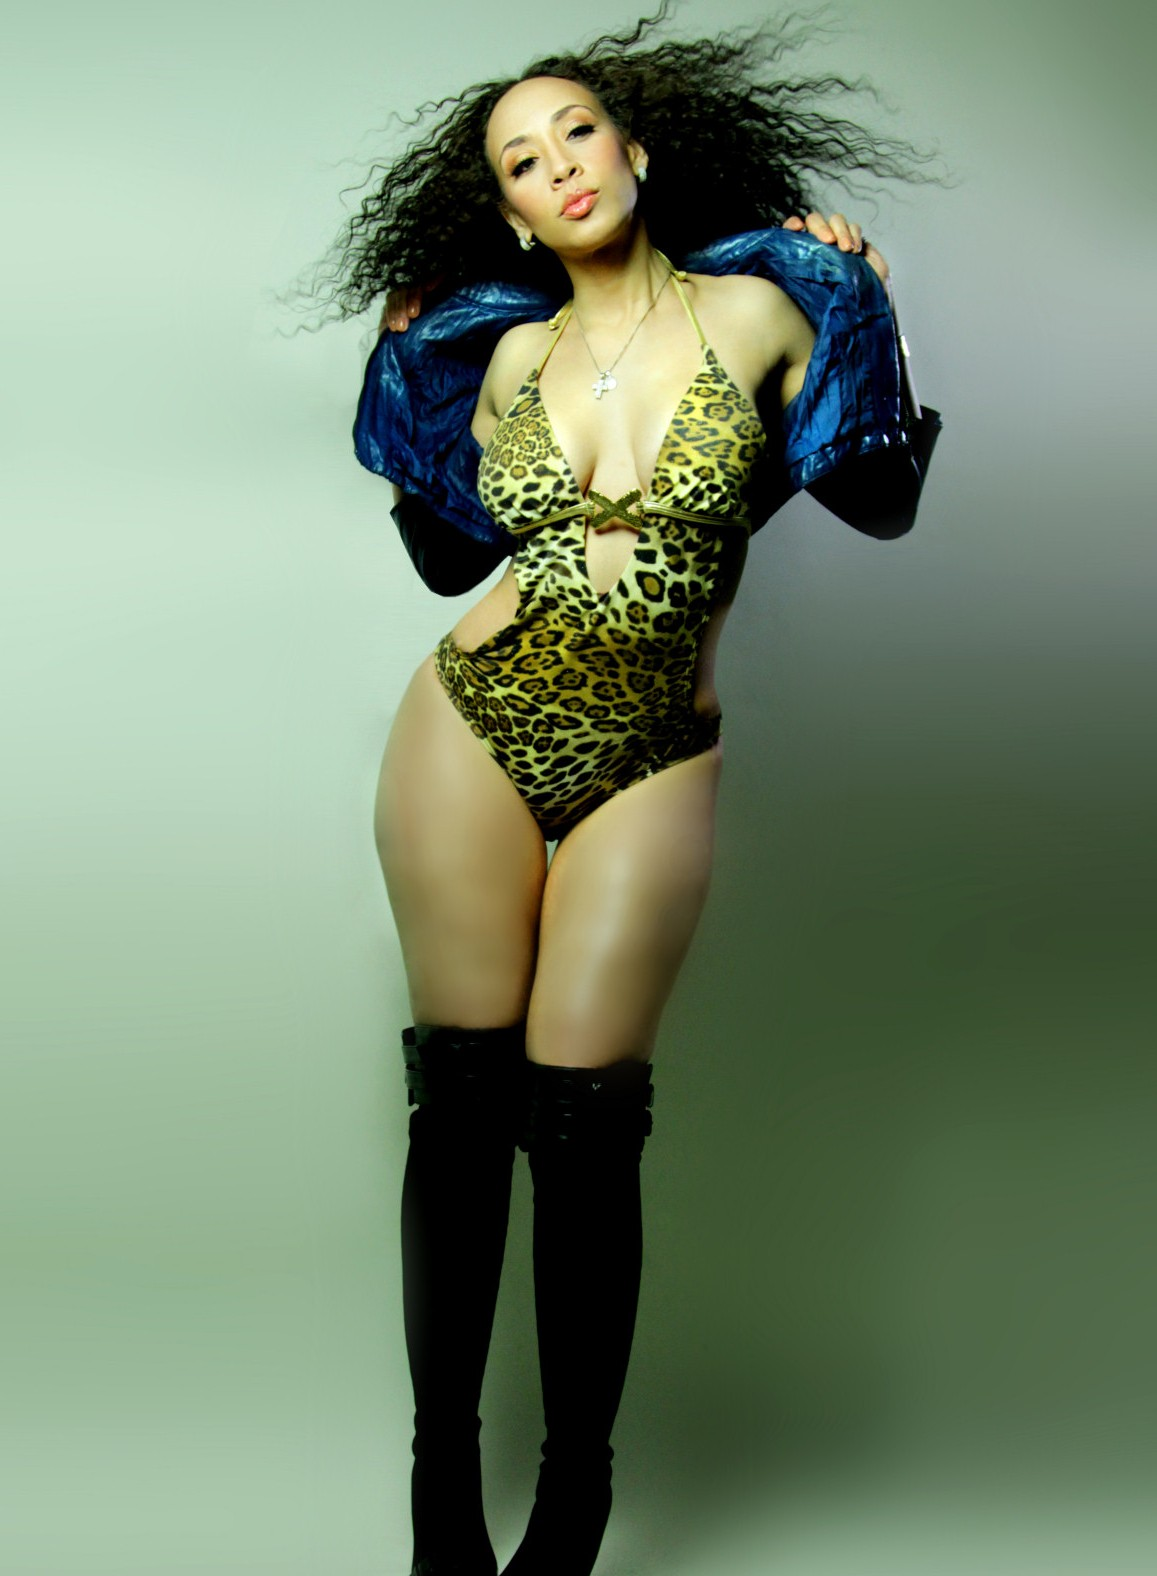 Vondecarlo com buttercup brown productions all rights reserved